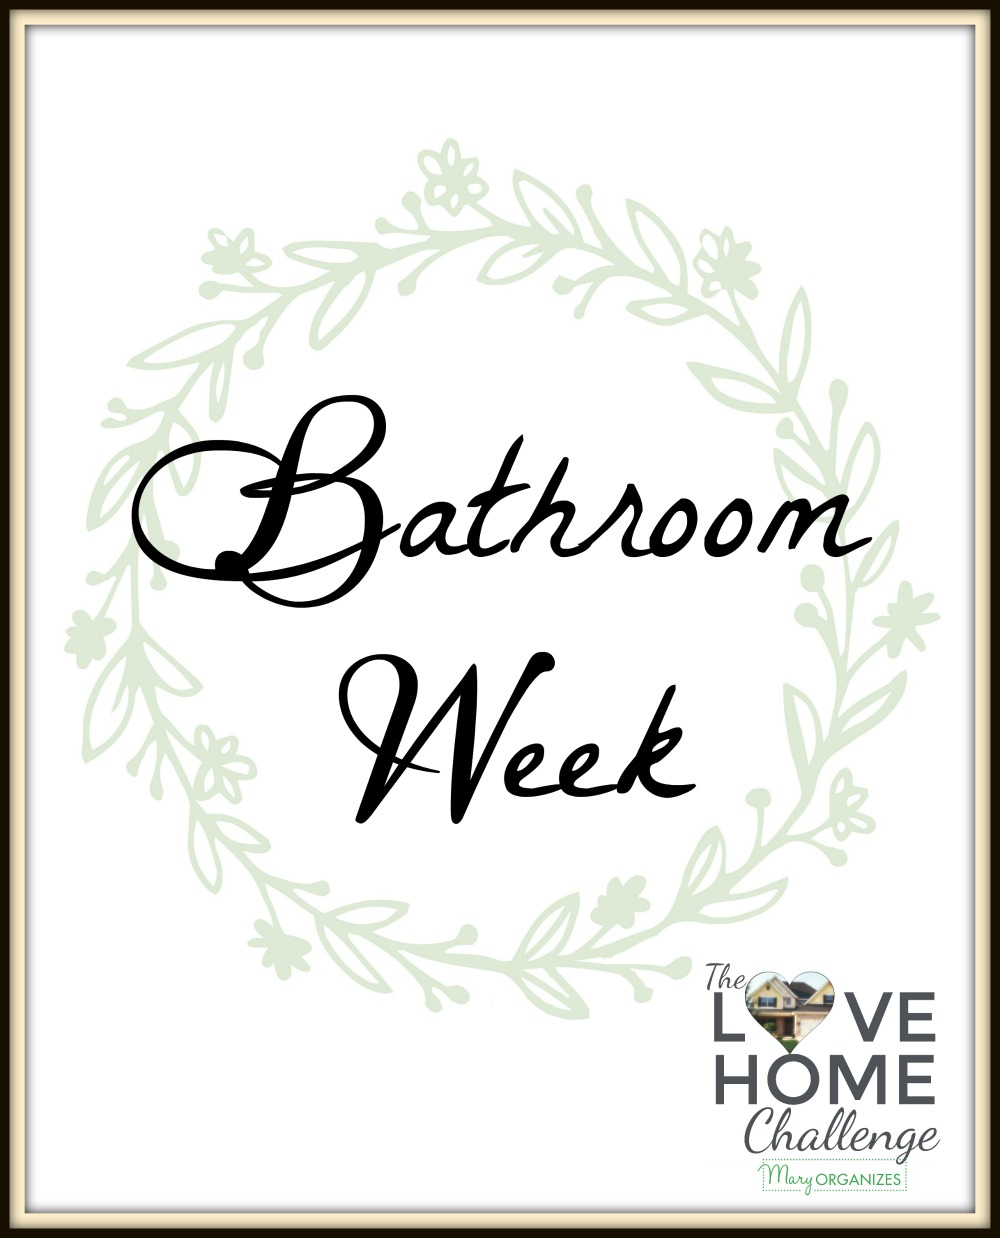 love-home-challenge-bathroom-week-v